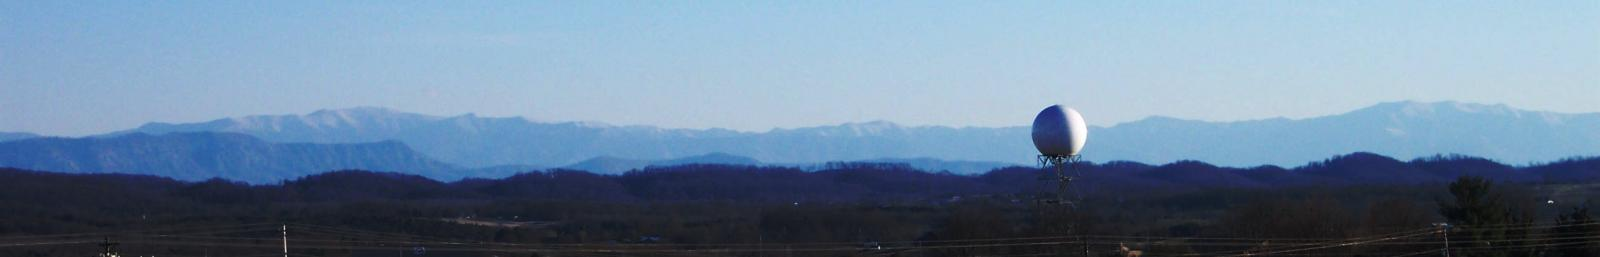 View of KMRX Doppler radar against the Smoky Mountain background